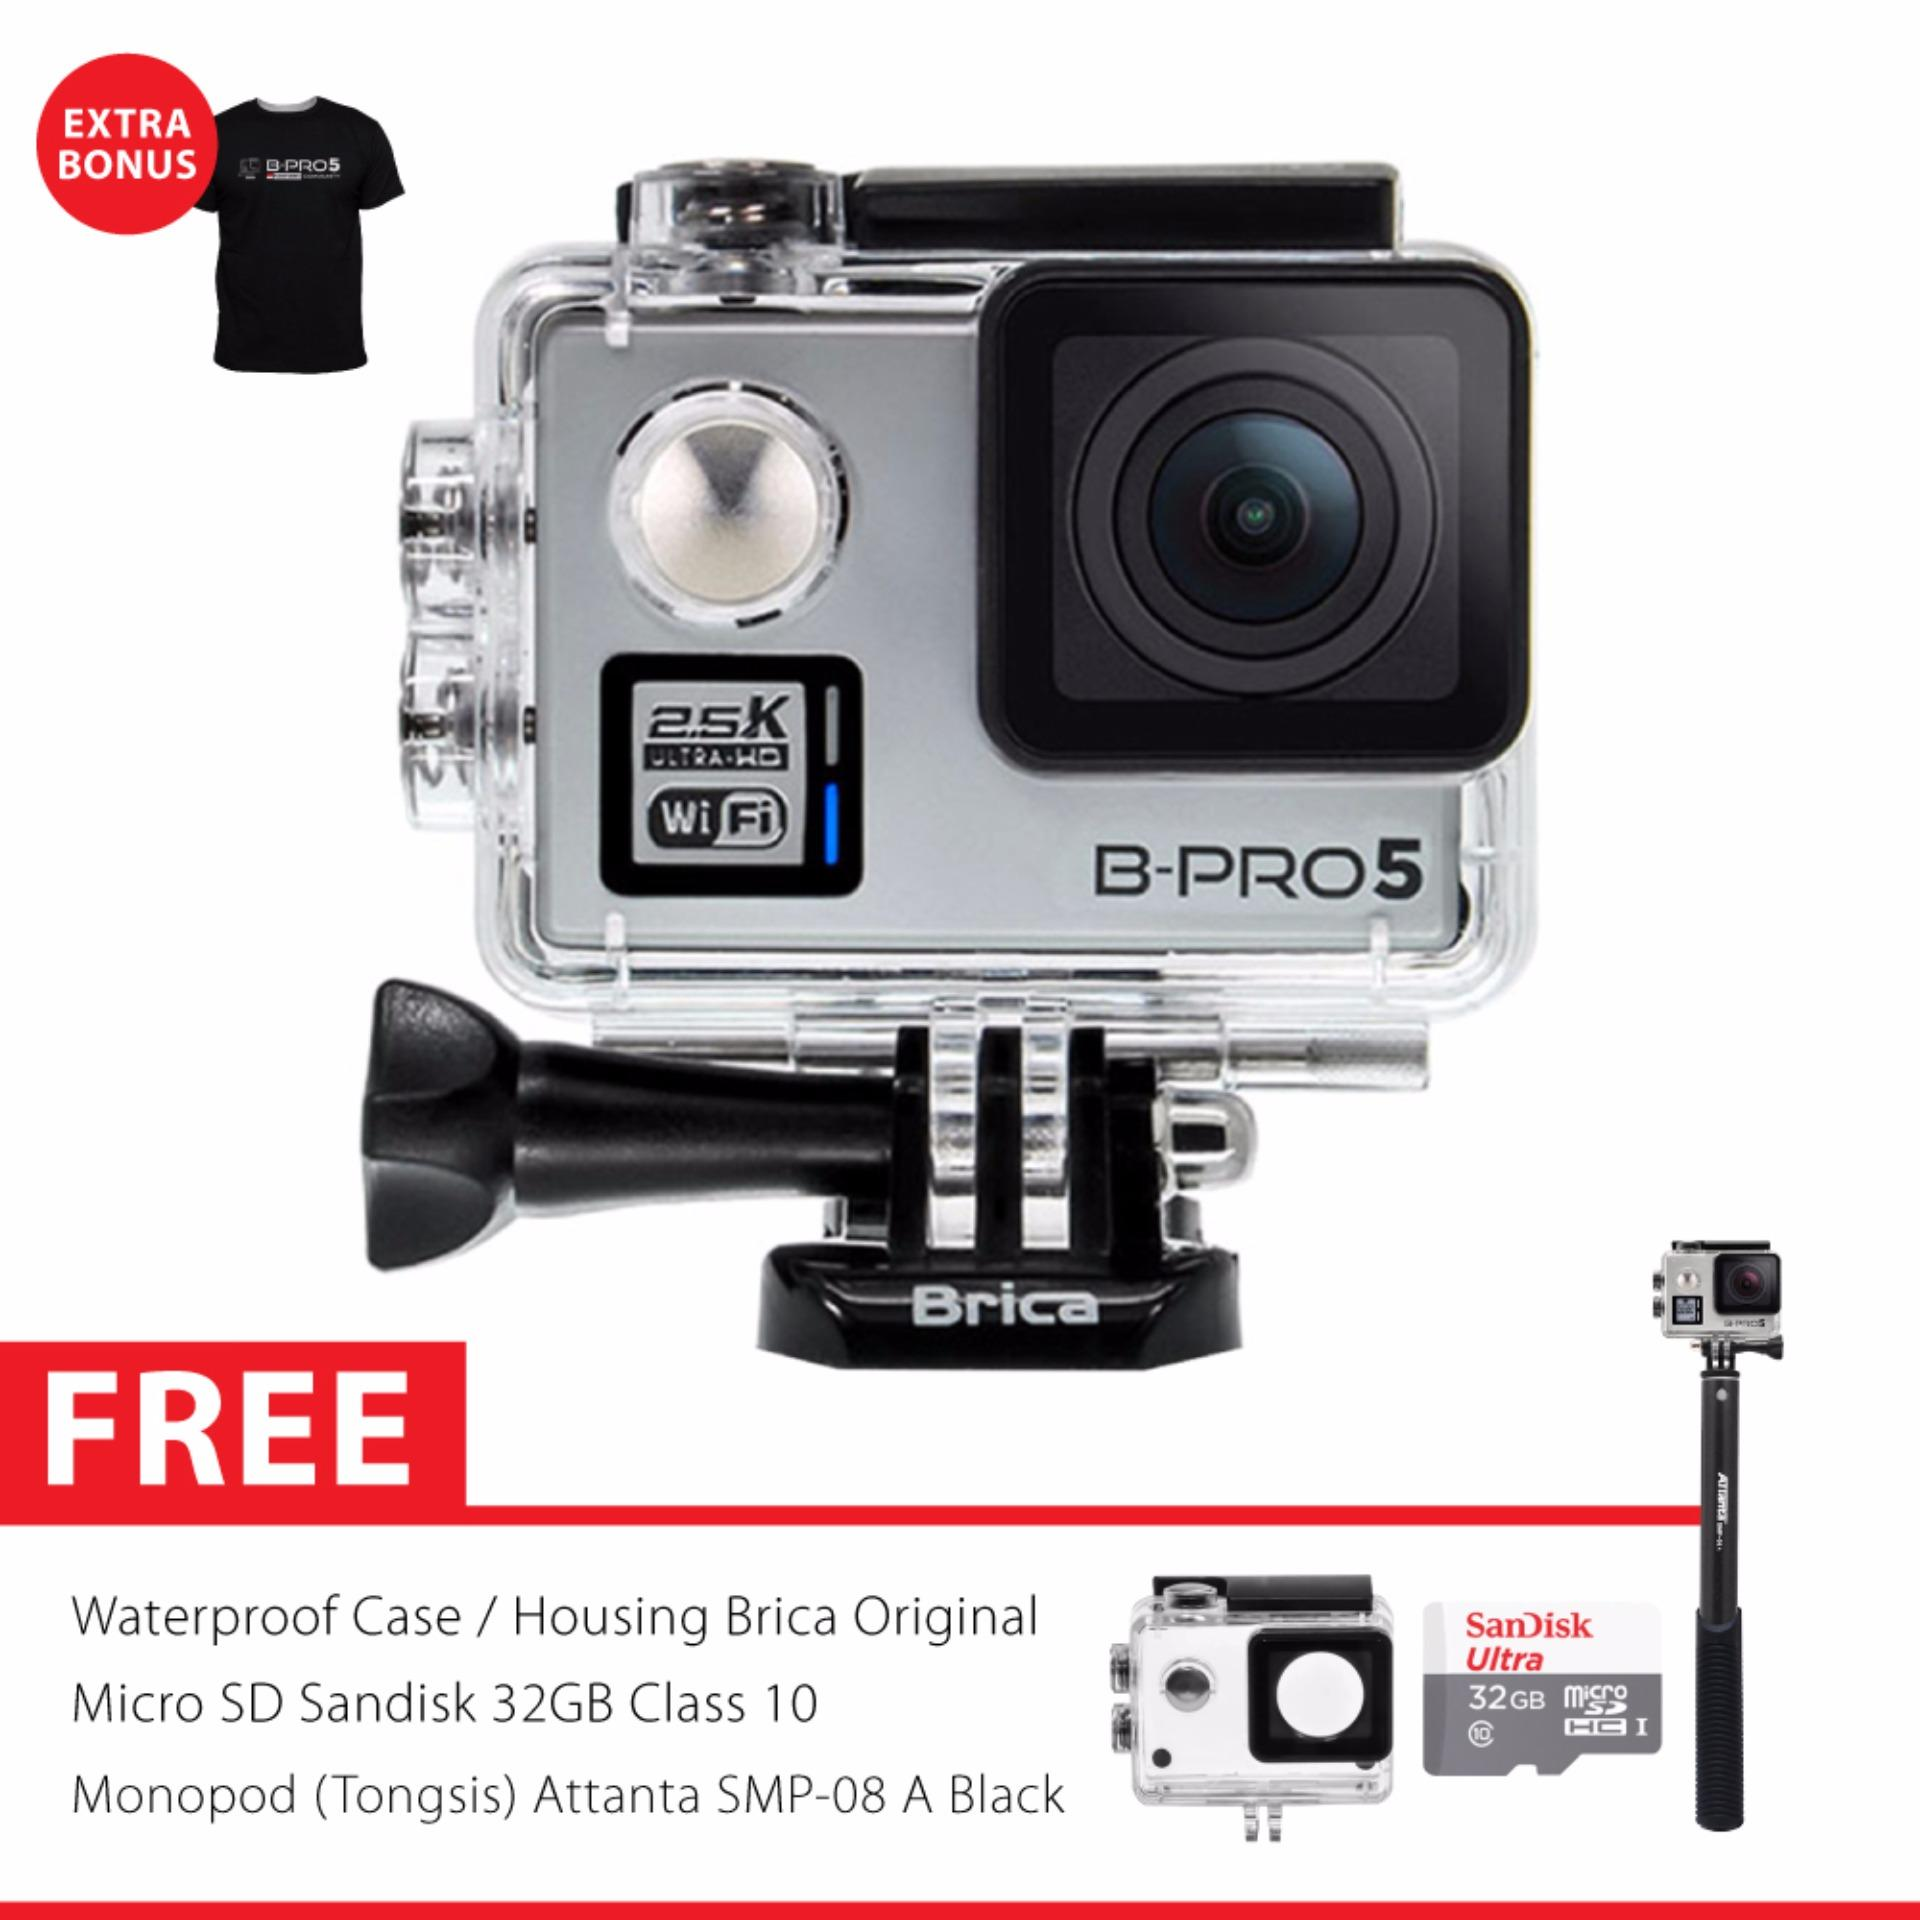 Brica B Pro 5 Alpha Plus Version 2 Ap2 Combo Attanta Supreme Monopod Attanta Smp 08A Micro Sd Card 32 Gb Silver Banten Diskon